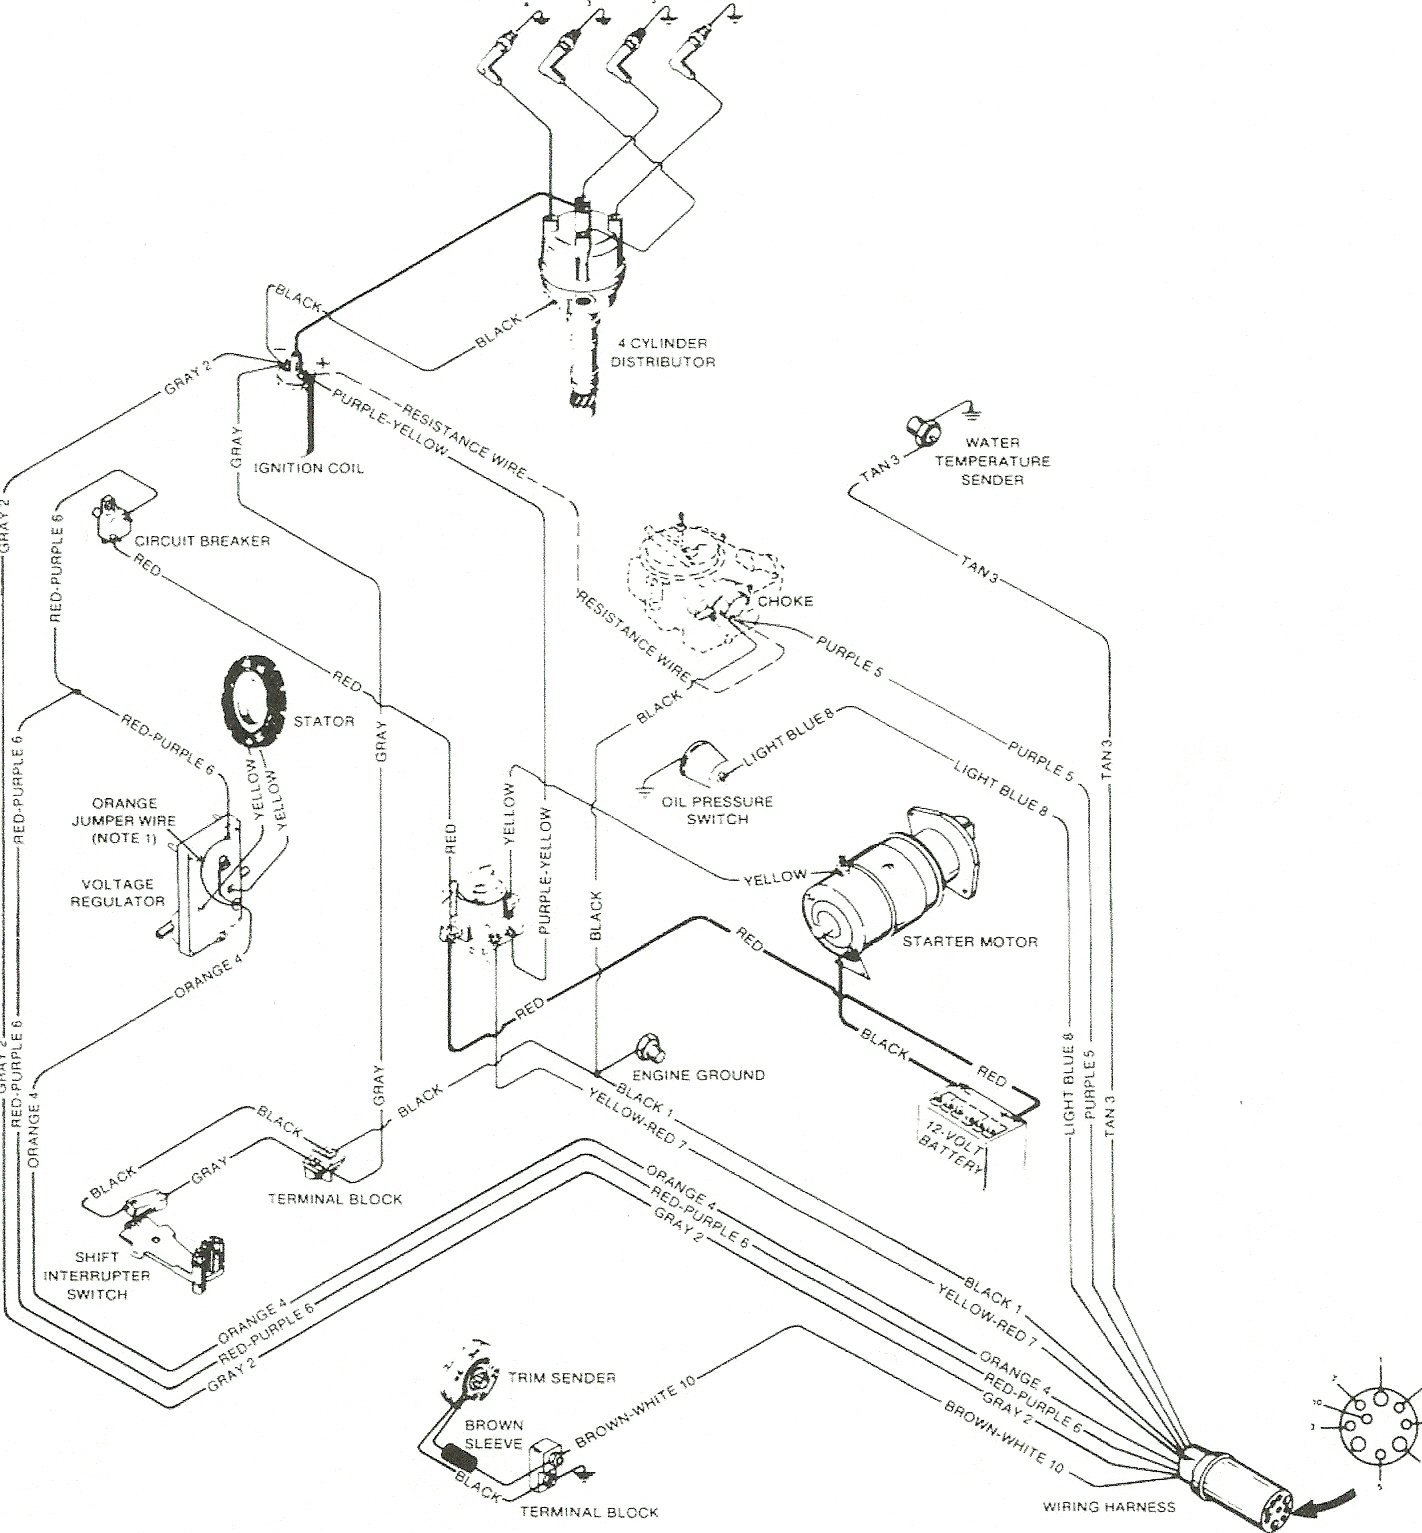 Mercruiser 3.0 Ignition Wiring Diagram on